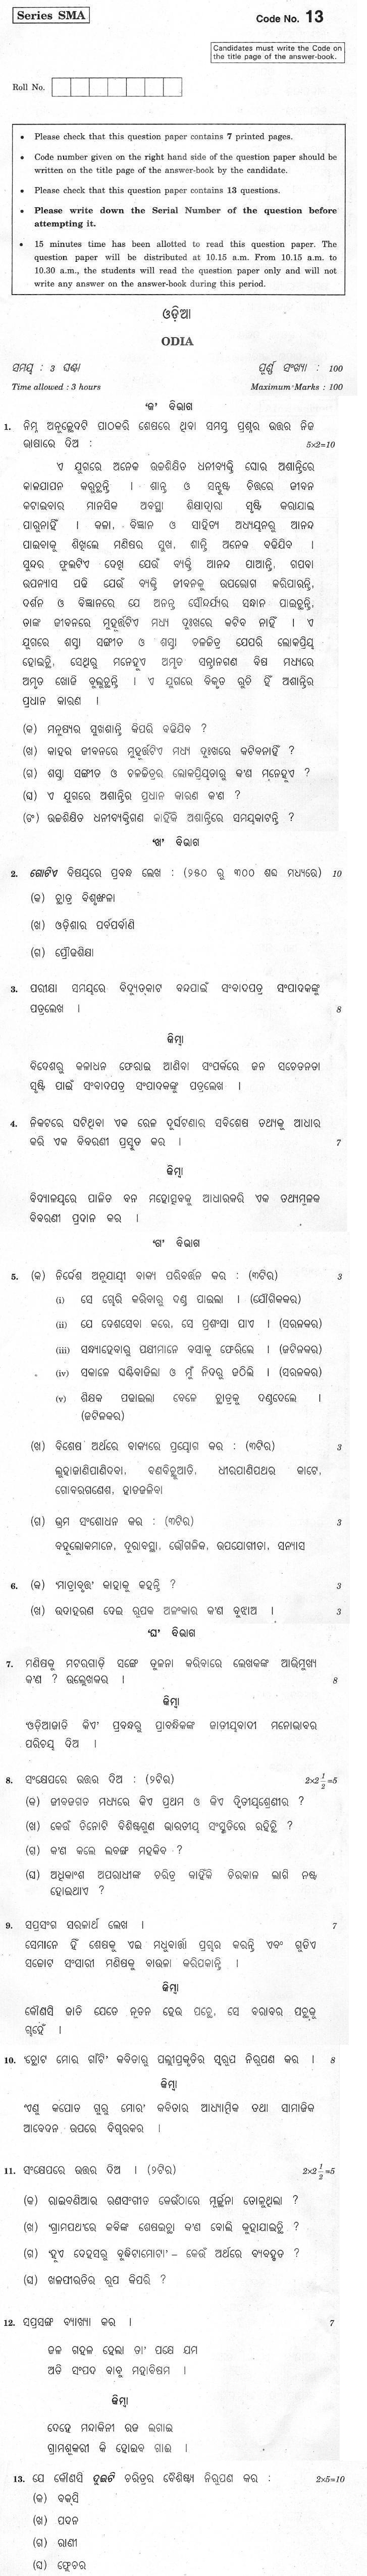 CBSE Class XII Previous Year Question Paper 2012 Odia